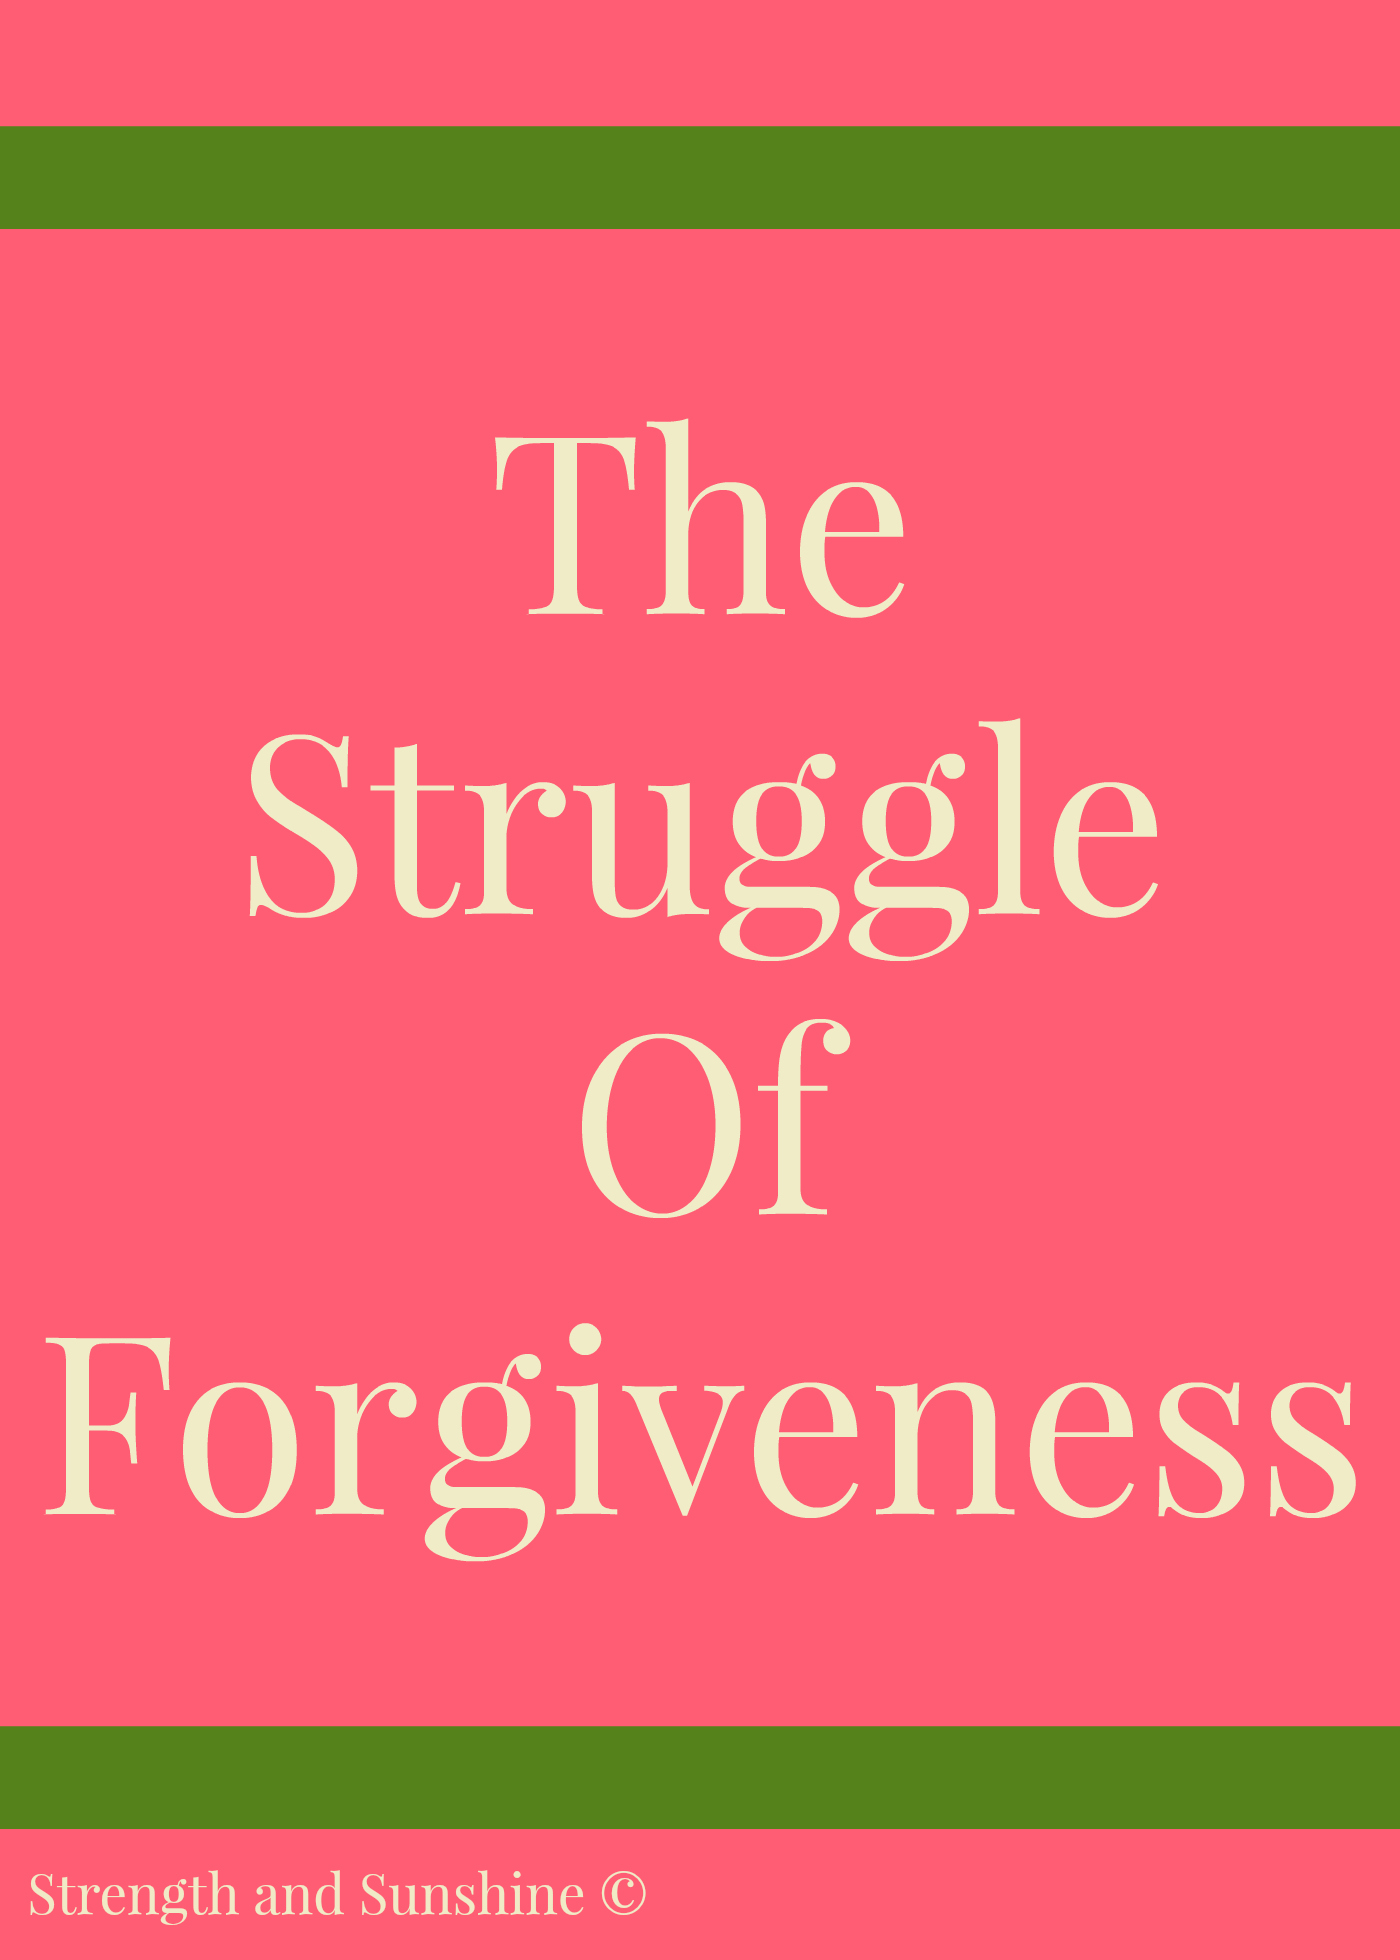 The Struggle Of Forgiveness | Strength and Sunshine @RebeccaGF666 #forgiveness